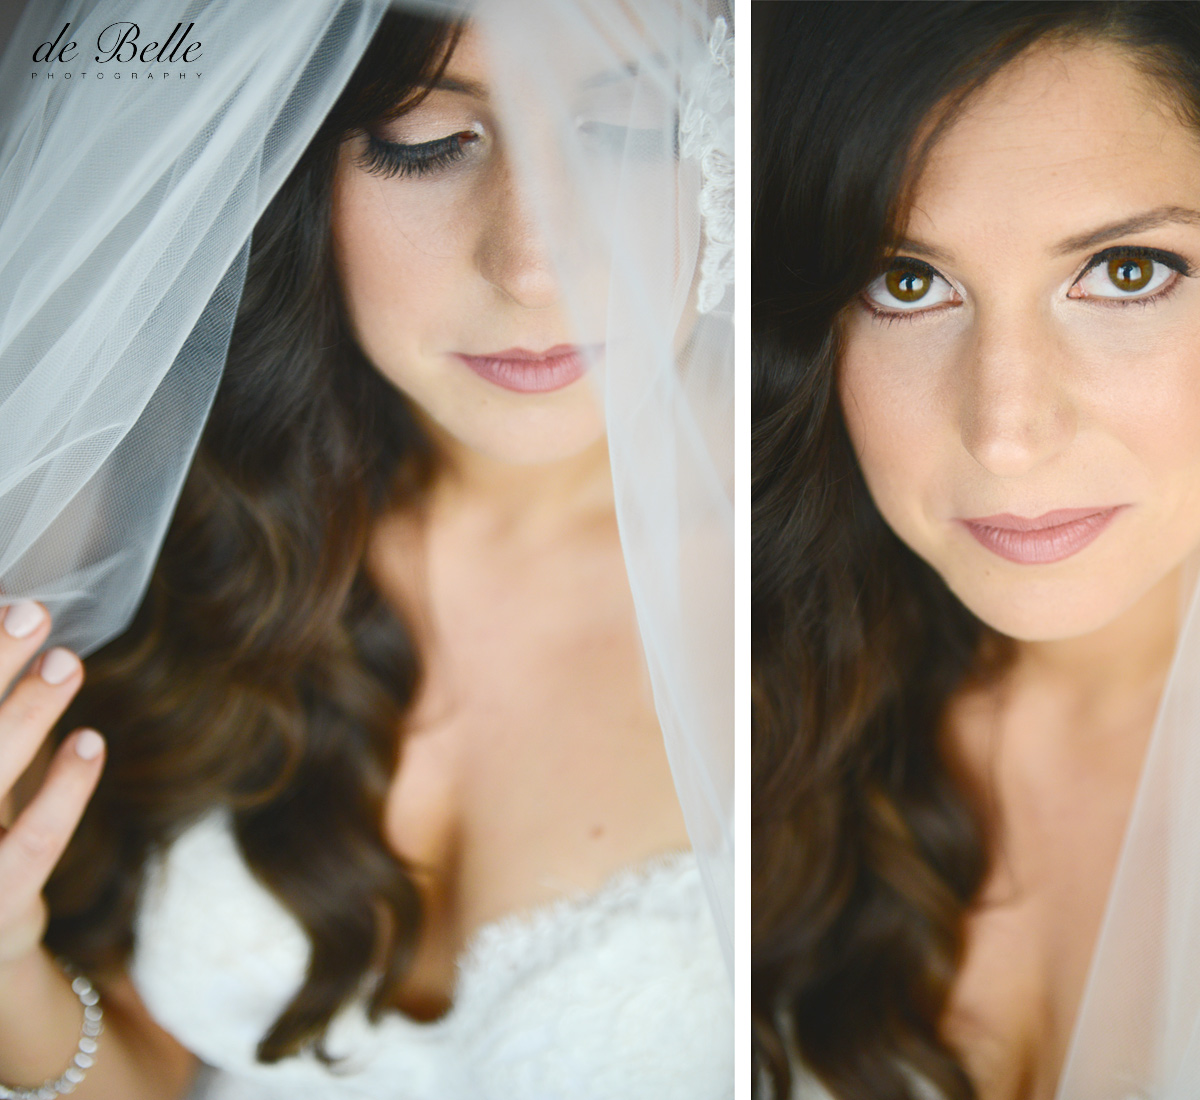 wedding_montreal_debellephotography_08